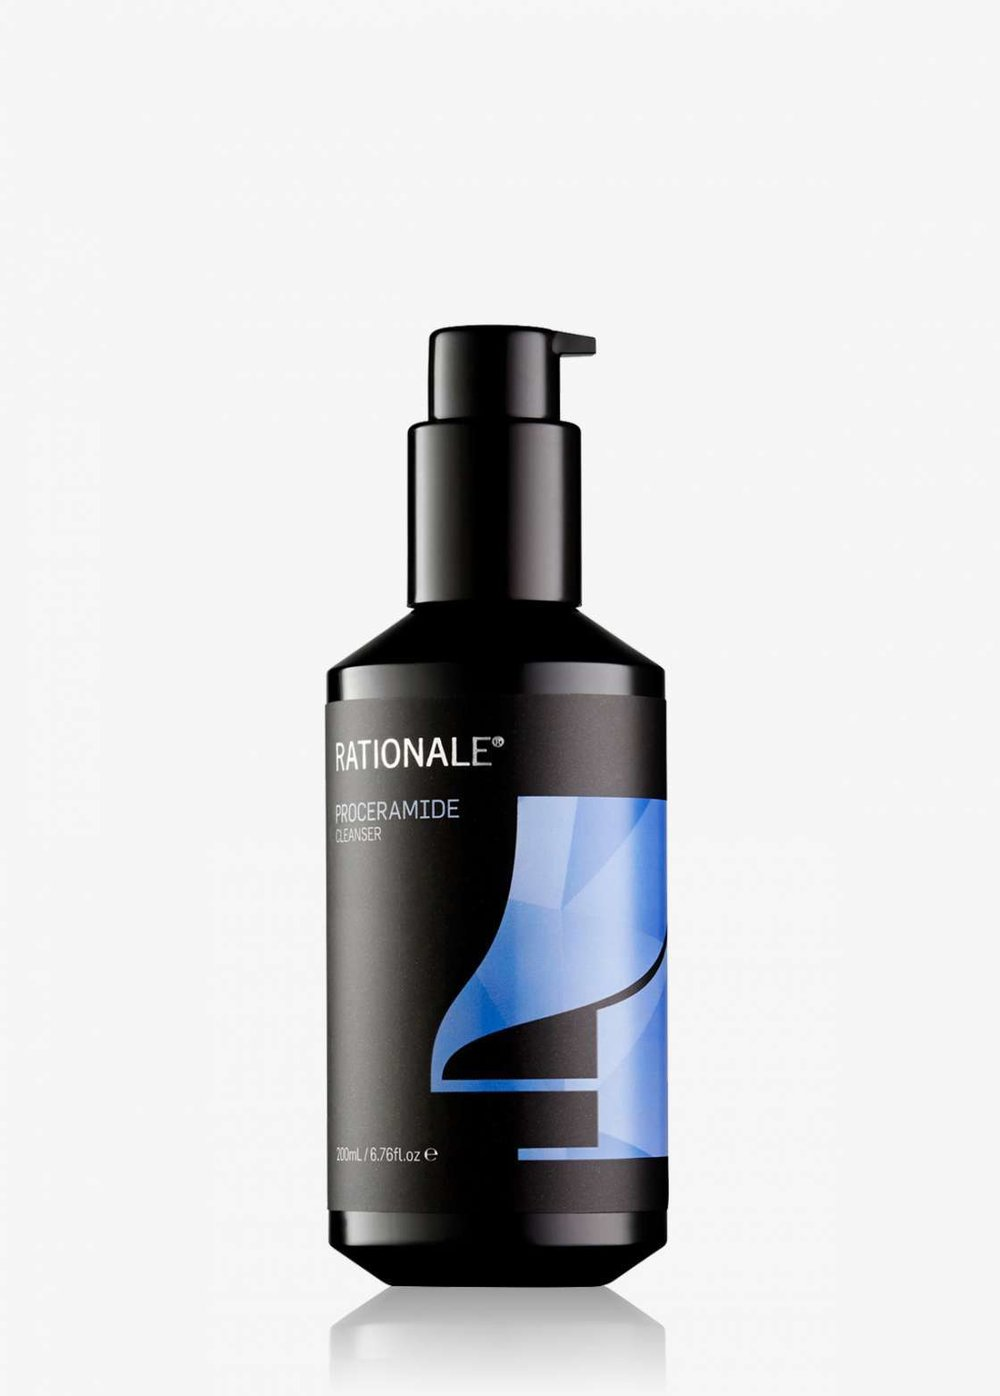 Double Cleanse - DOUBLE CLEANSE. DOIBLE NOURISHIntroduce nourishing oil and cream cleansers into your routine to boost softness and hydration, and to remove all traces of high SPF sunscreen every evening (Rationale ProCeramide Pre-Cleanse Oil and Rationale ProCeramide Cleanser.